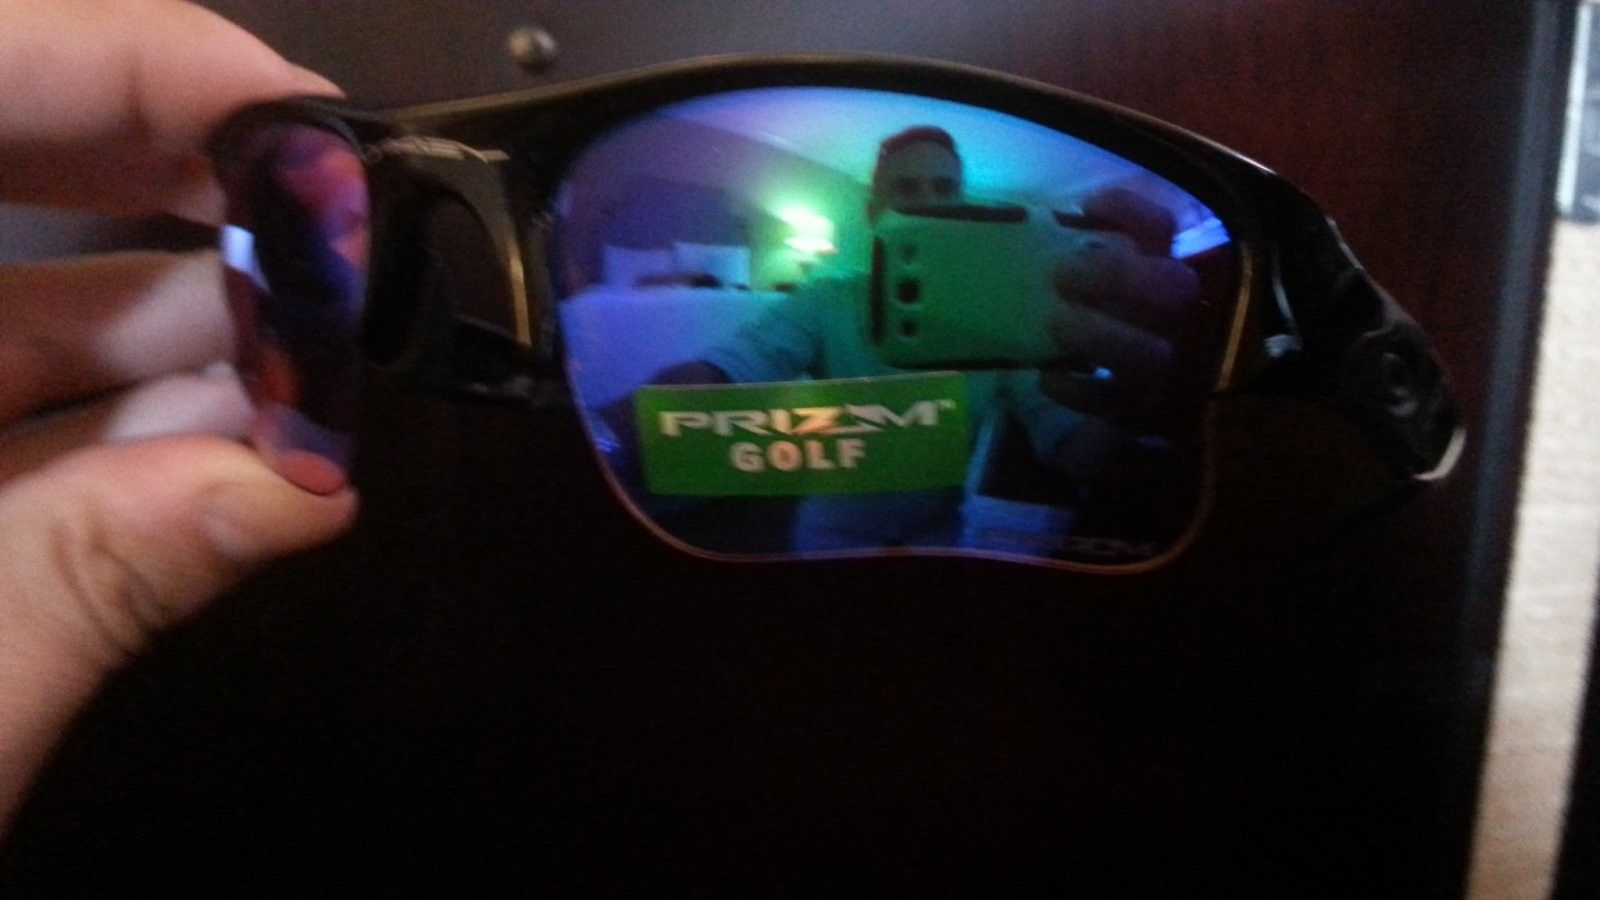 Oakley Prizm Lens Technology - I Wish You Guys Could Have Seen What I Saw Today! - 2014-10-06 13.31.16.jpg